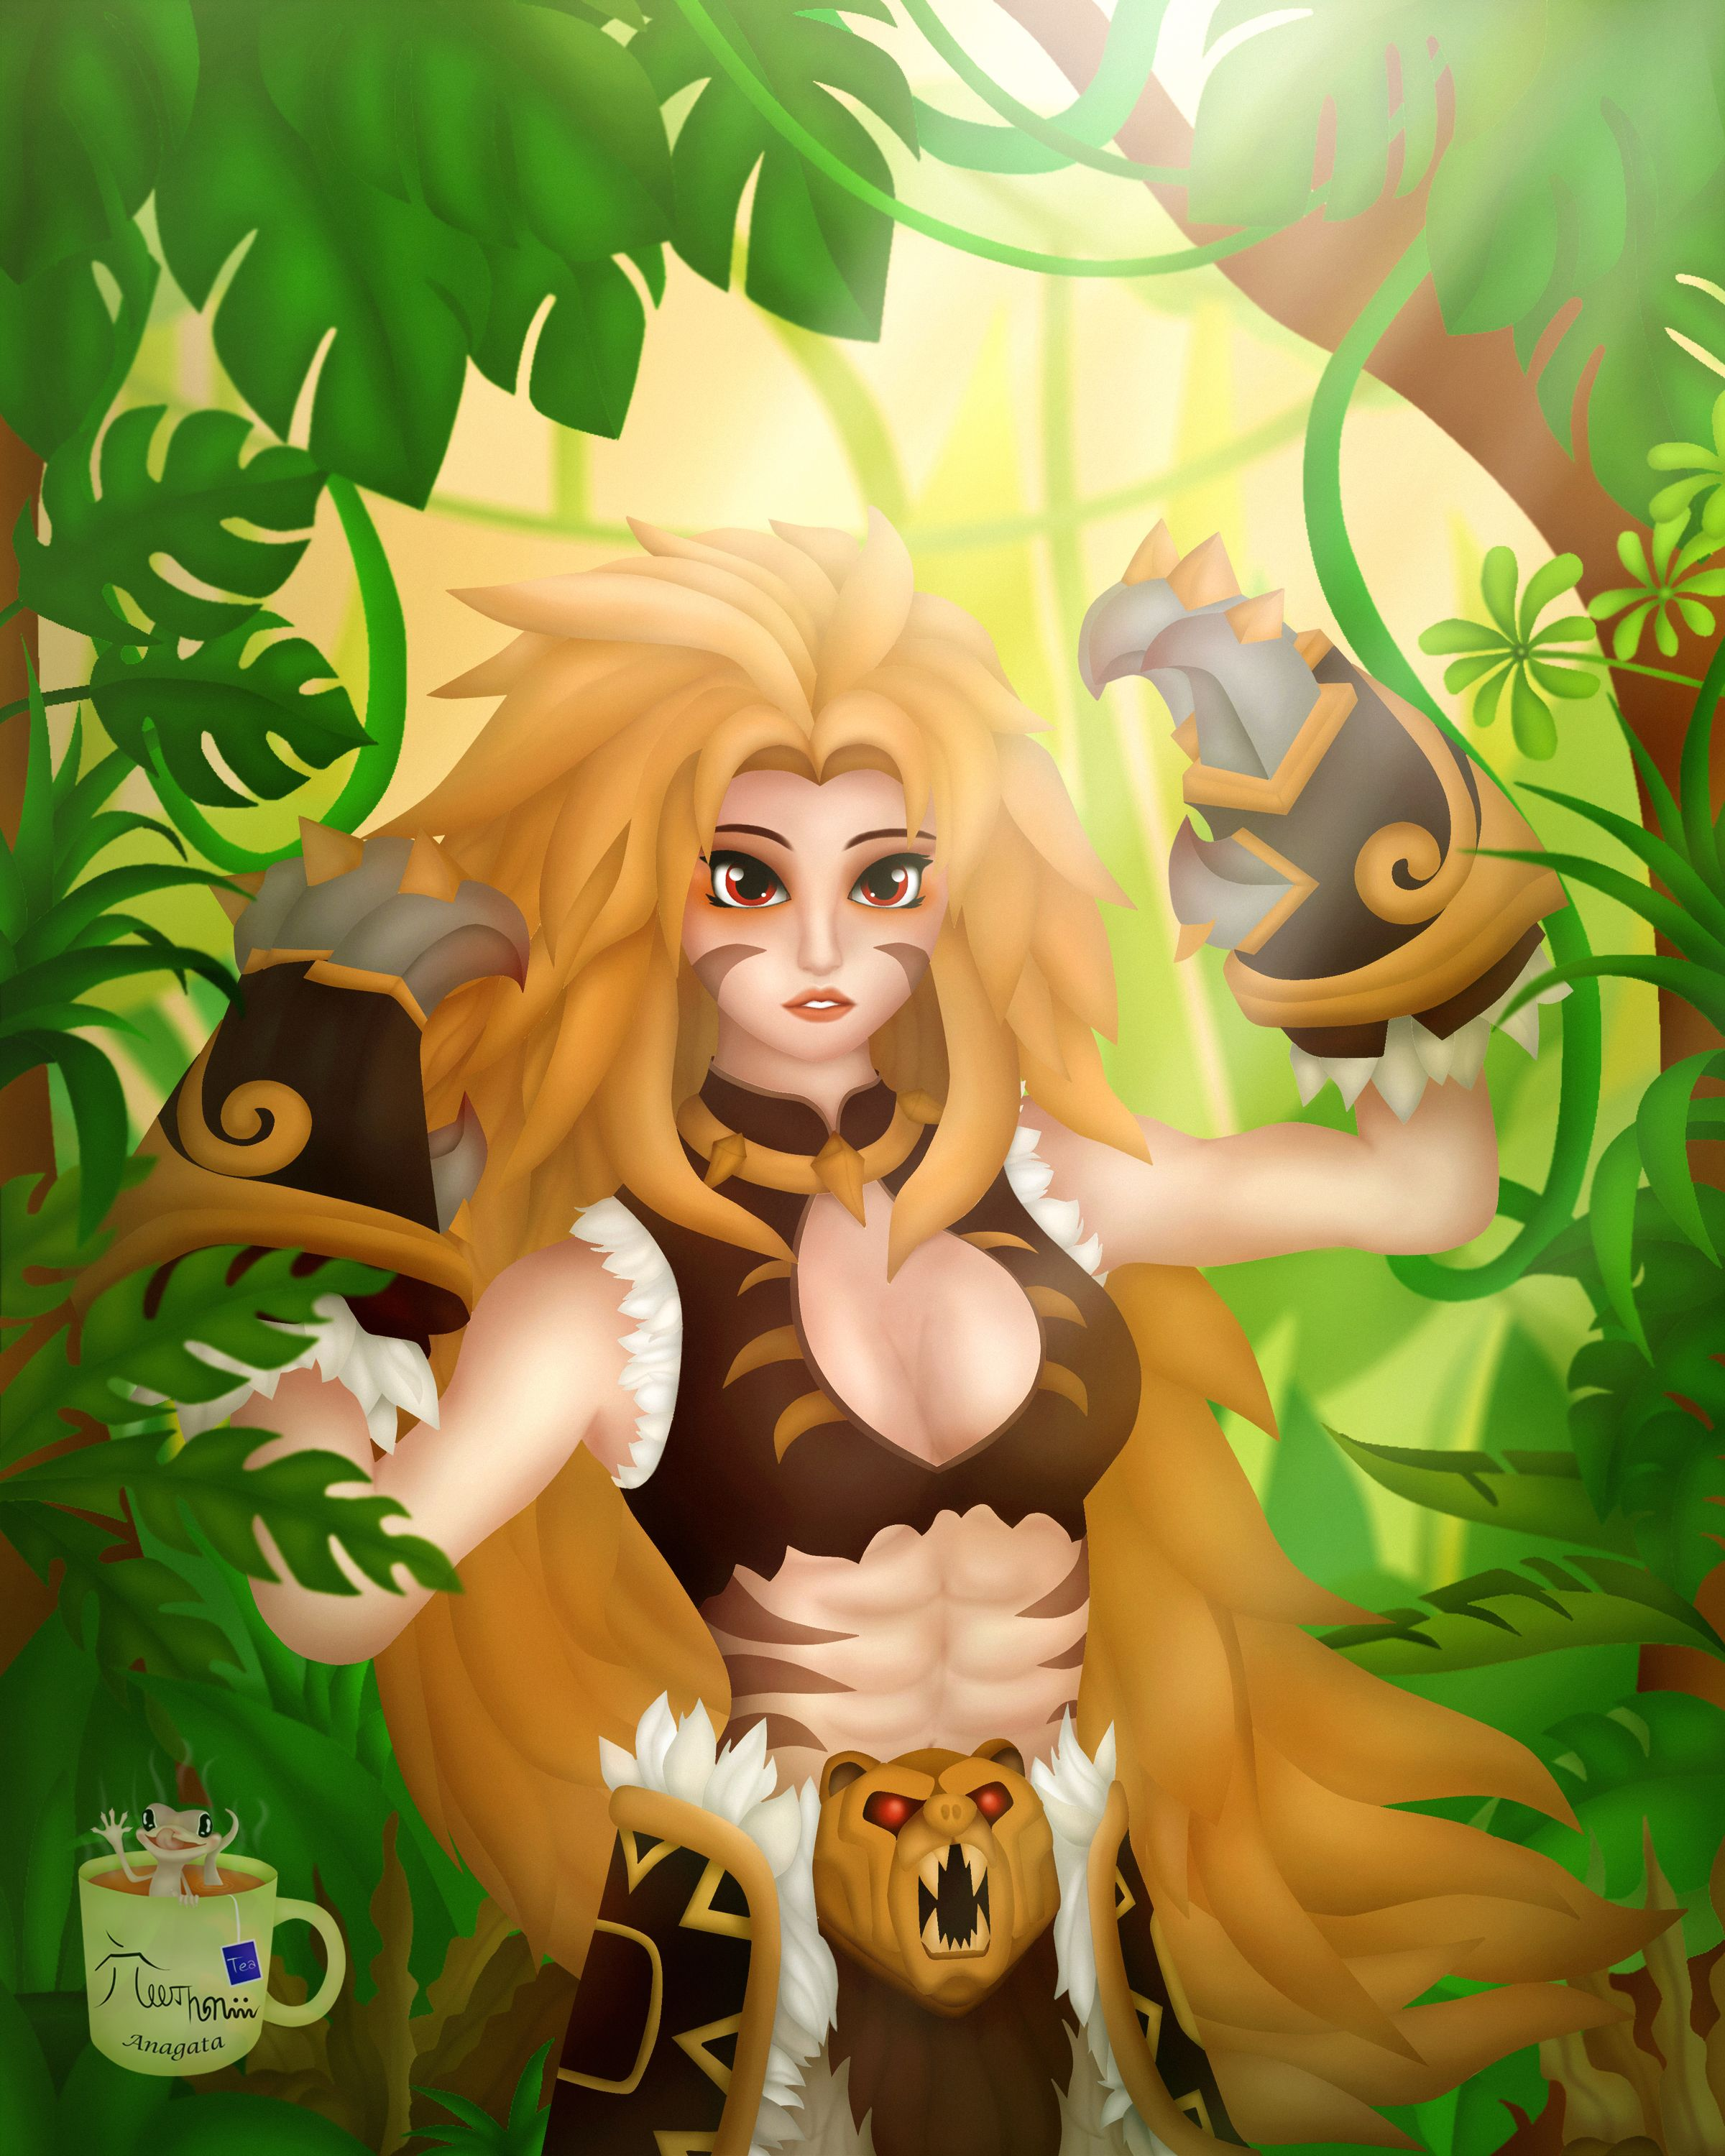 Masha Mobile Legends By Anagatajavanese On Deviantart Mobile Legends Mobile Legend Wallpaper Legend Dragon armor ( dragon tamer series ) is out today!! masha mobile legends by anagatajavanese